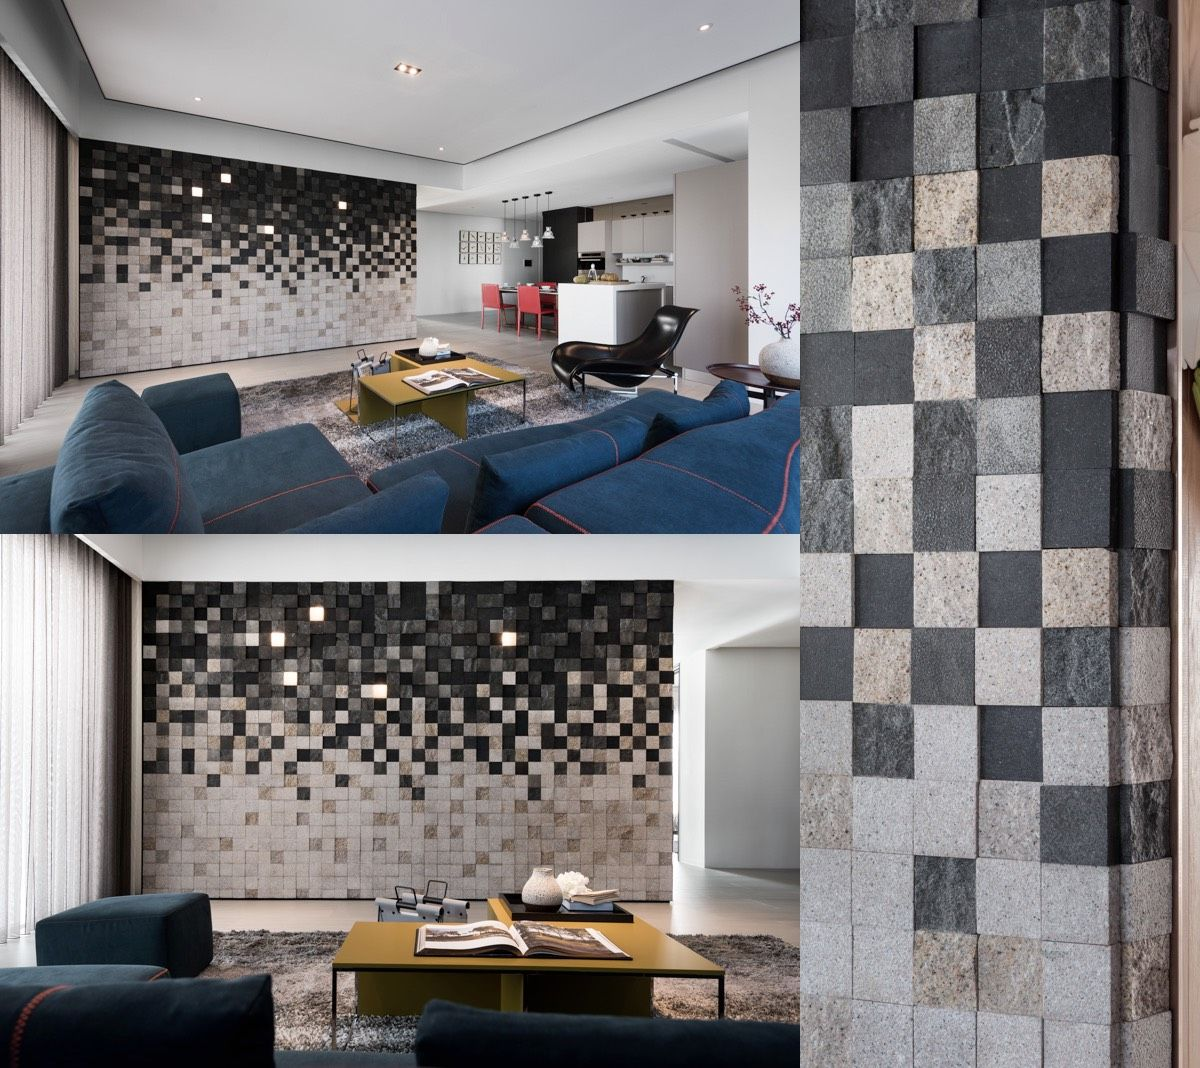 Wall Texture Designs For The Living Room Ideas Inspiration Living Room Wall Designs Wall Texture Design Textured Walls